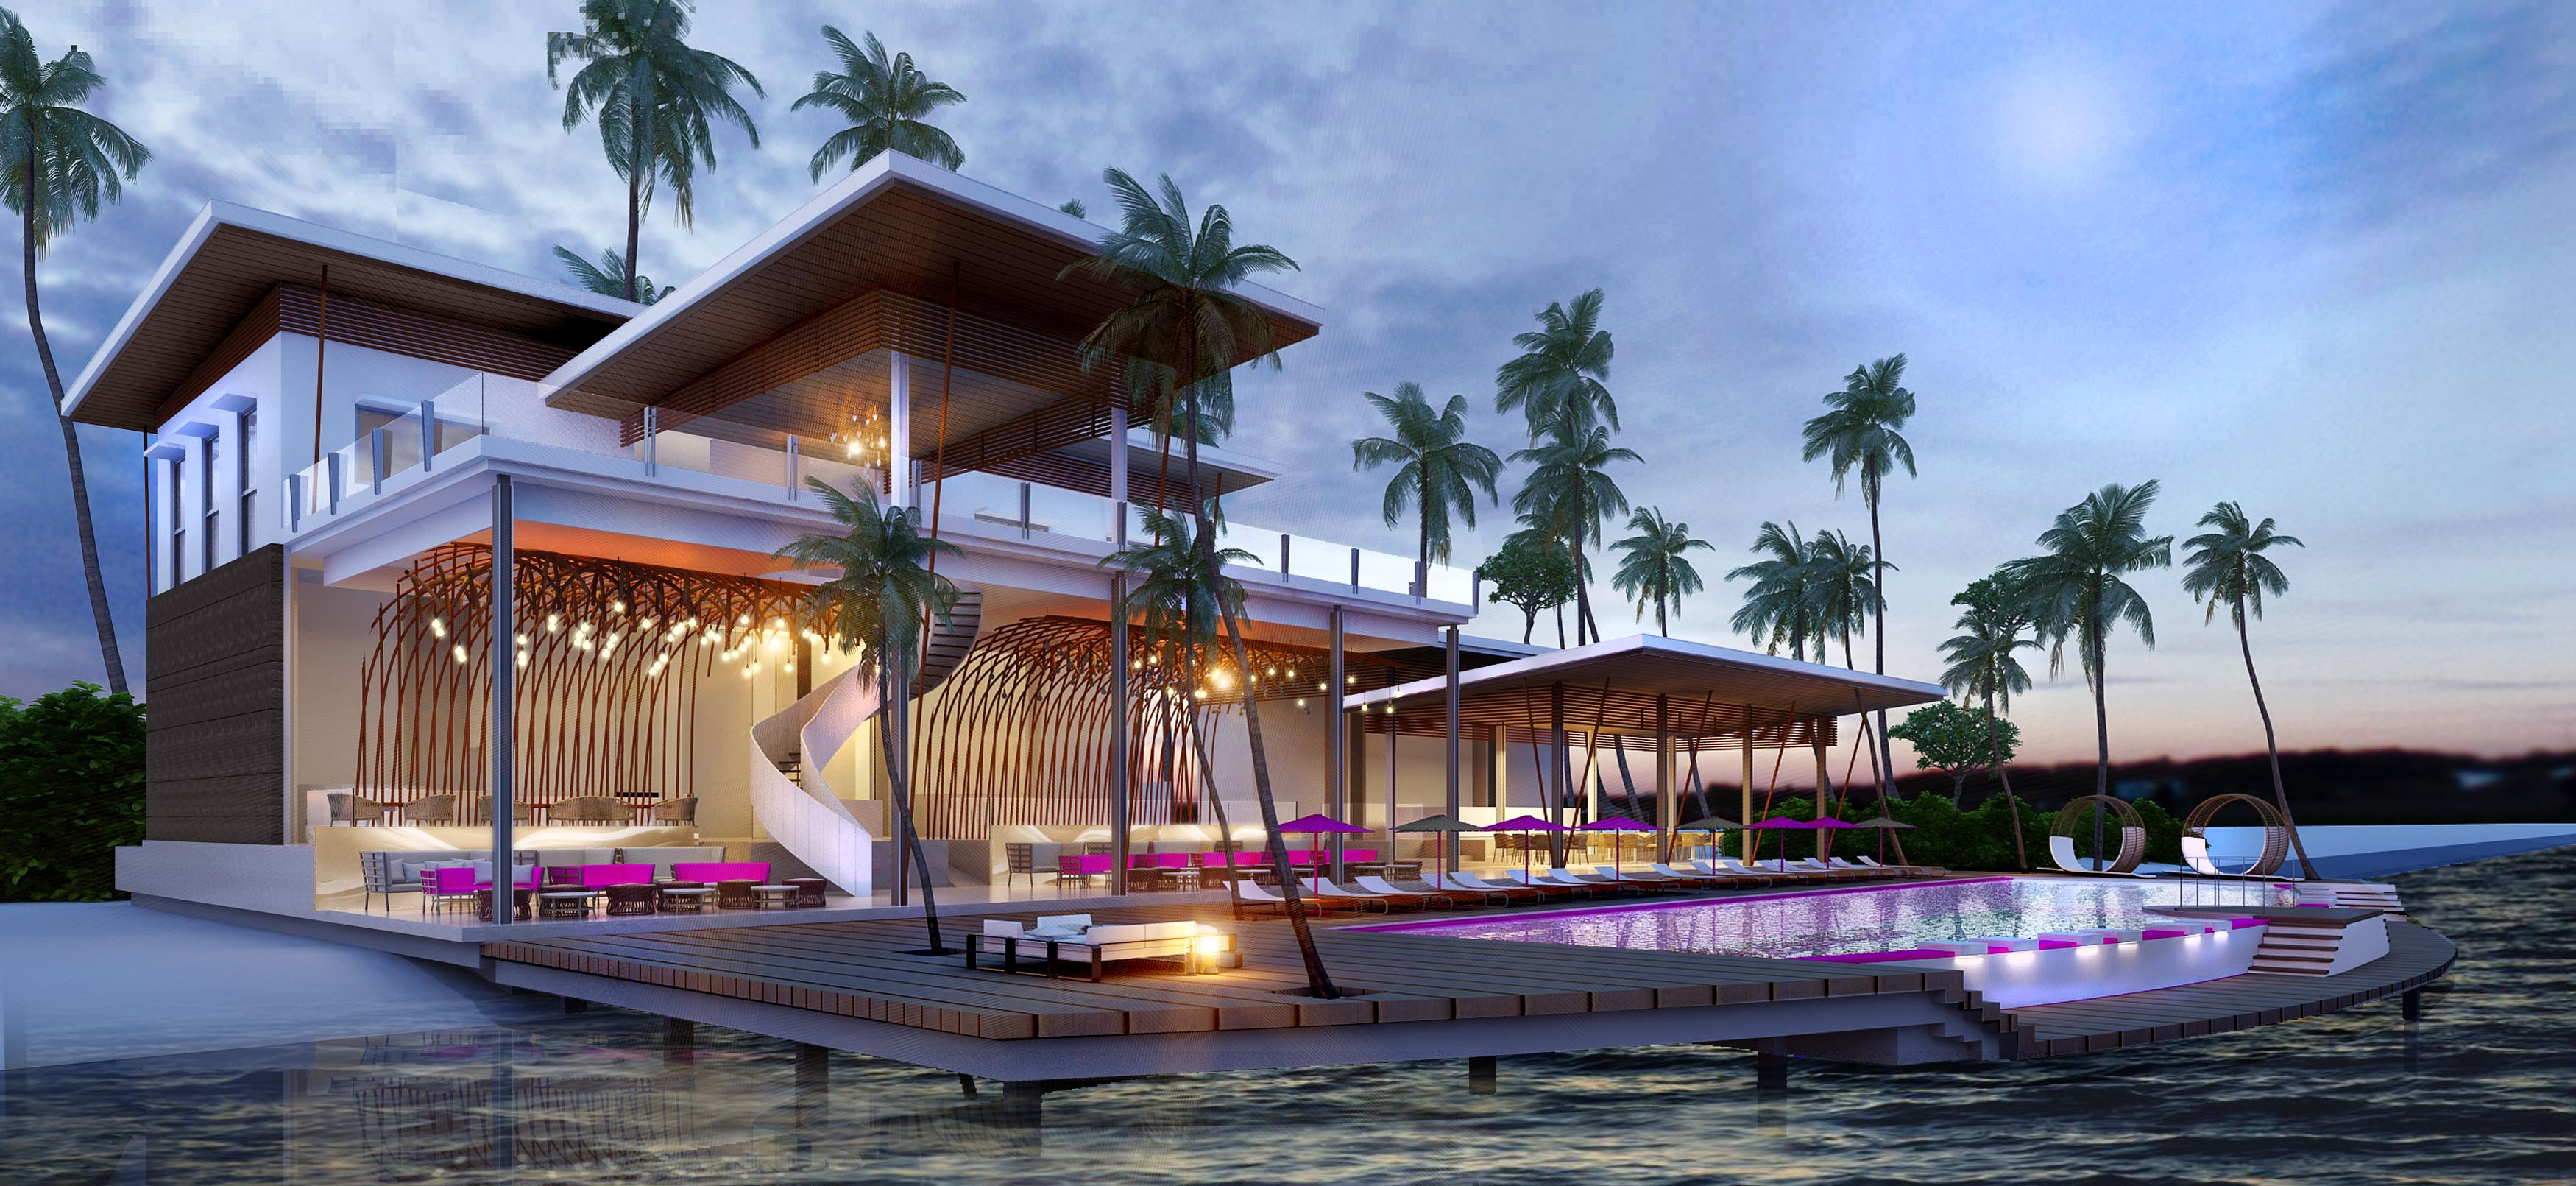 50 New Hotel Openings For 2018 | Asia | LUX* - North Male Atoll, Maldives